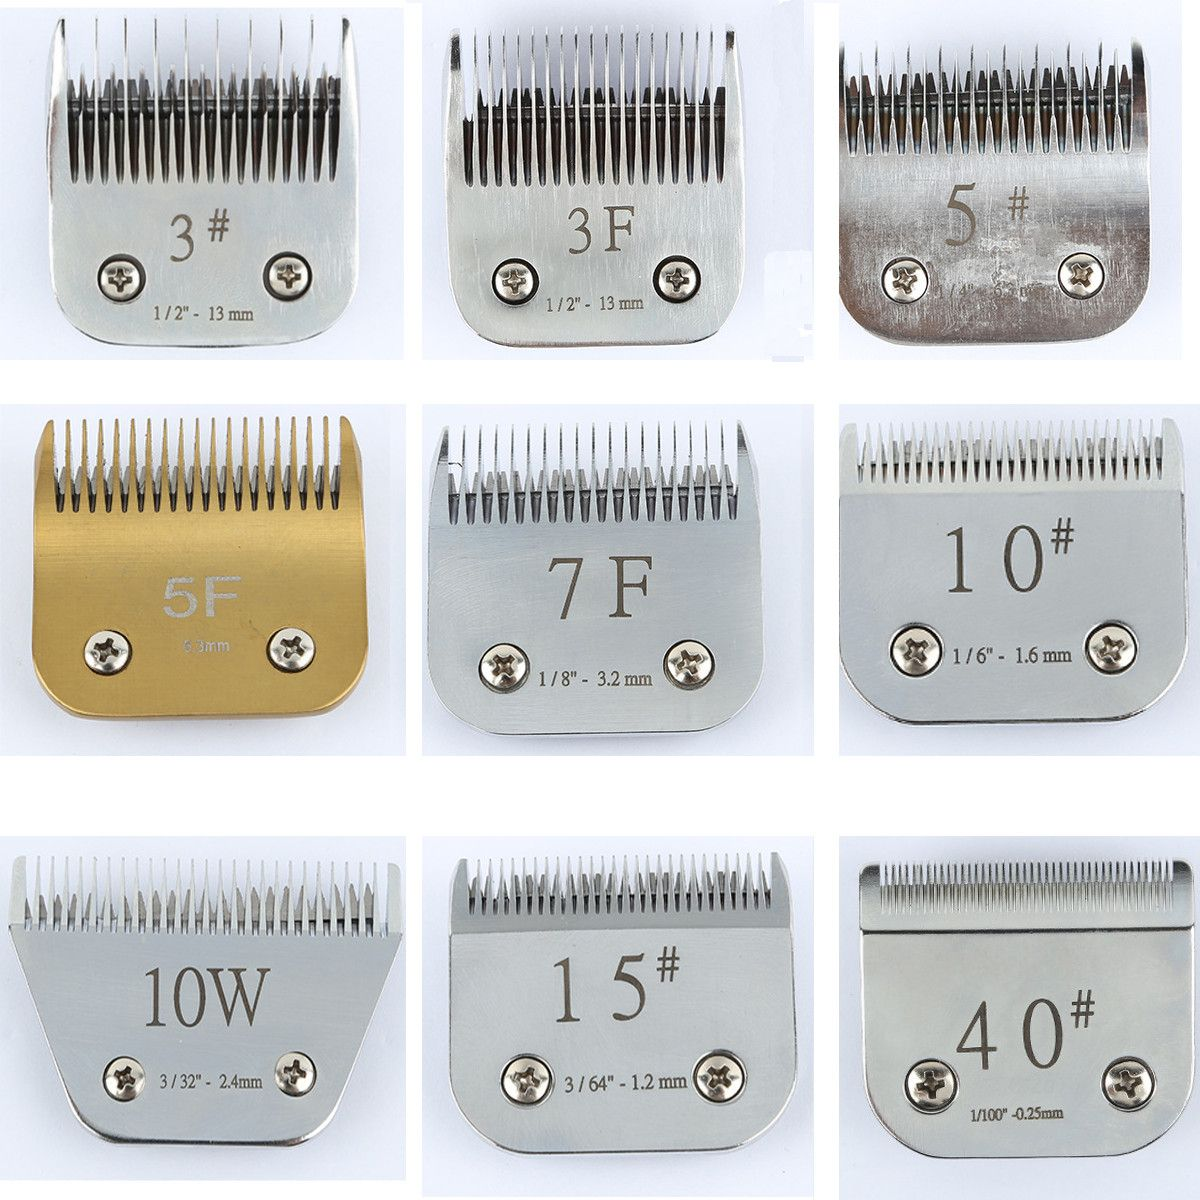 Oster No 7F Dog Grooming Clipper Blade 3.2mm